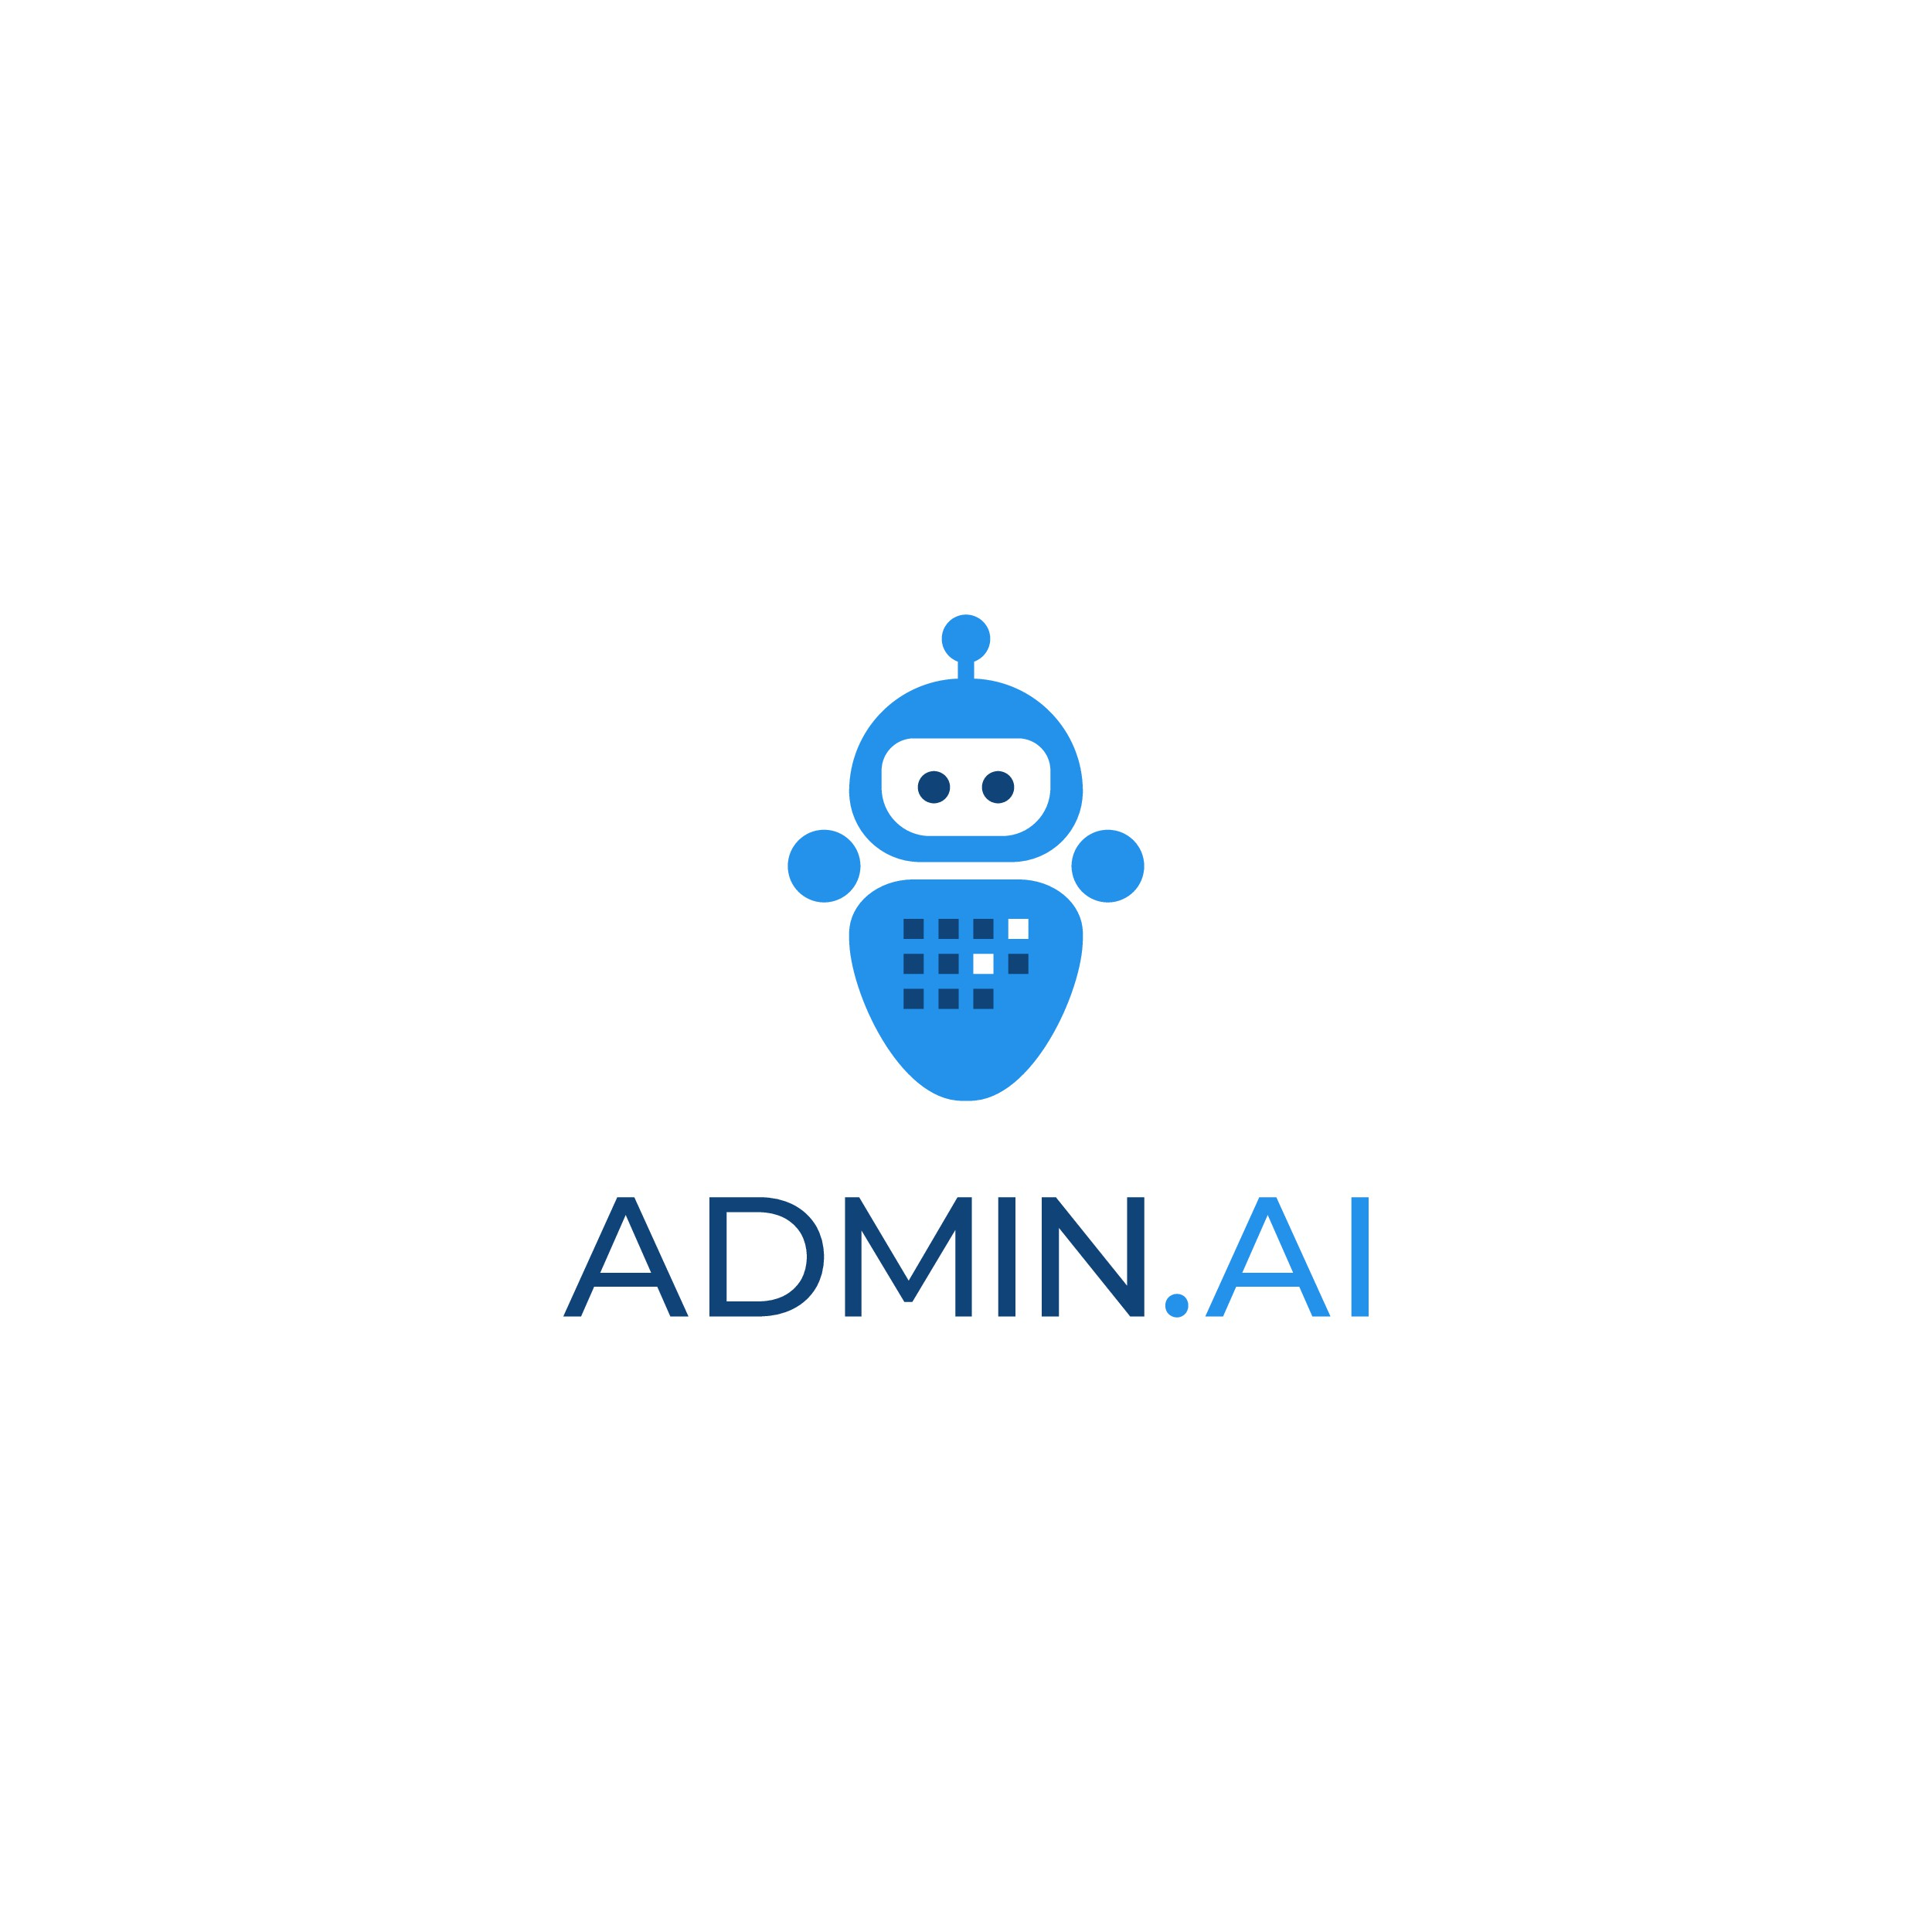 ADMIN.AI--The Virtual Assistant for Busy People